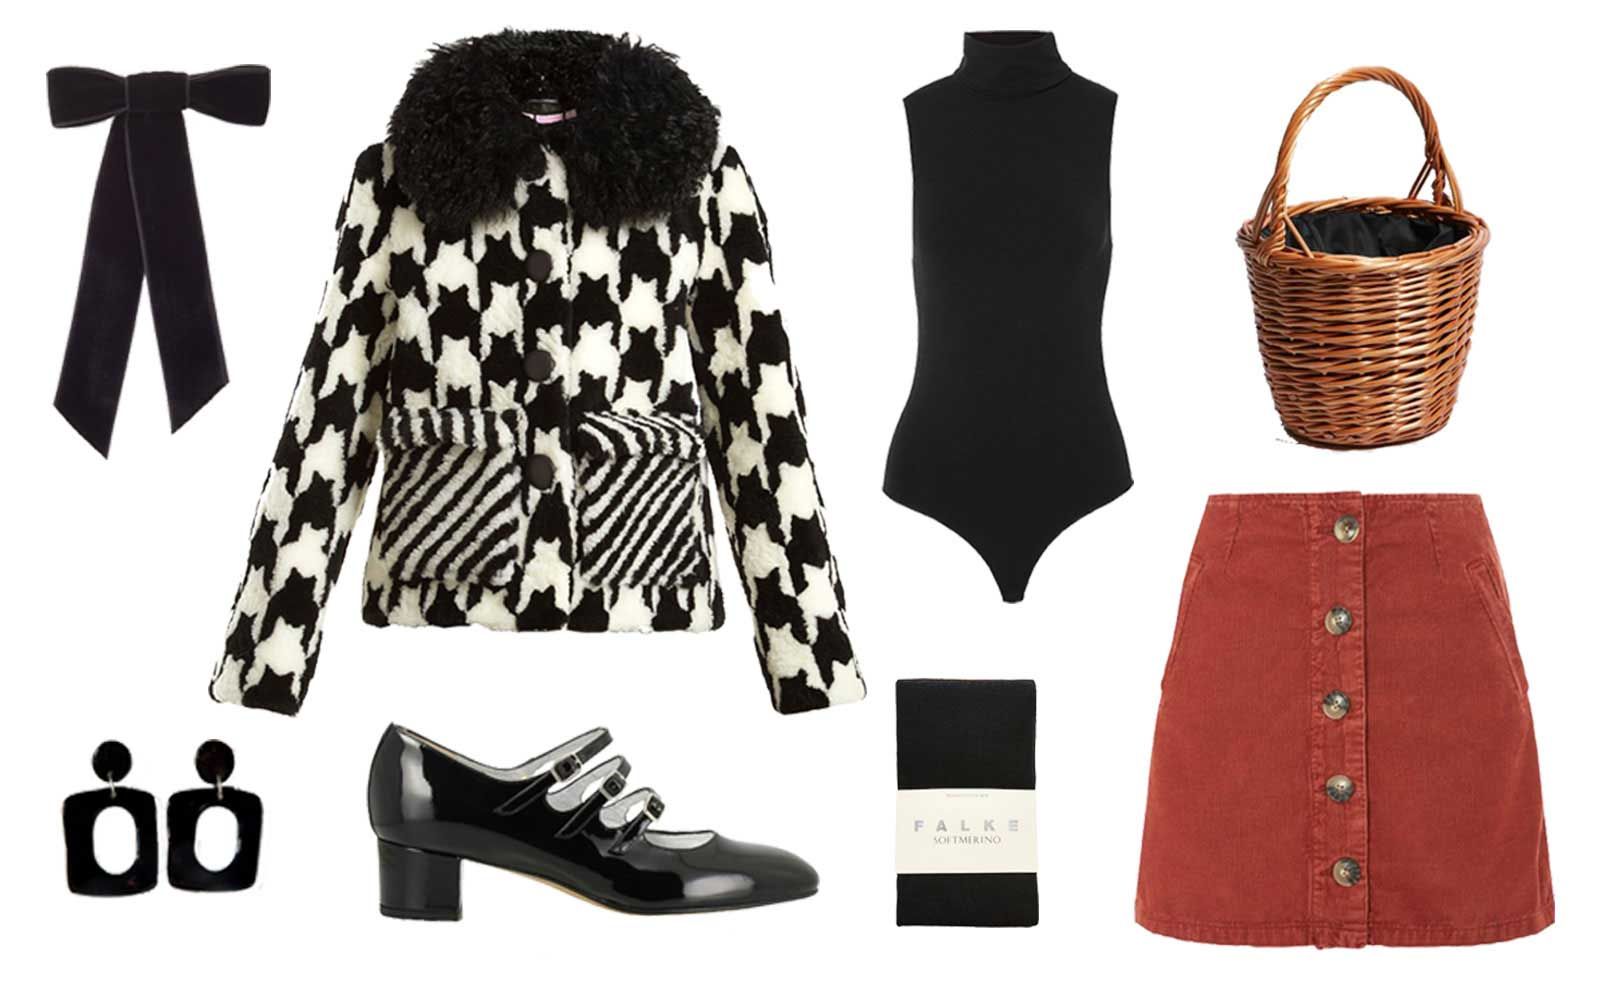 What to wear for a day of shopping in Paris